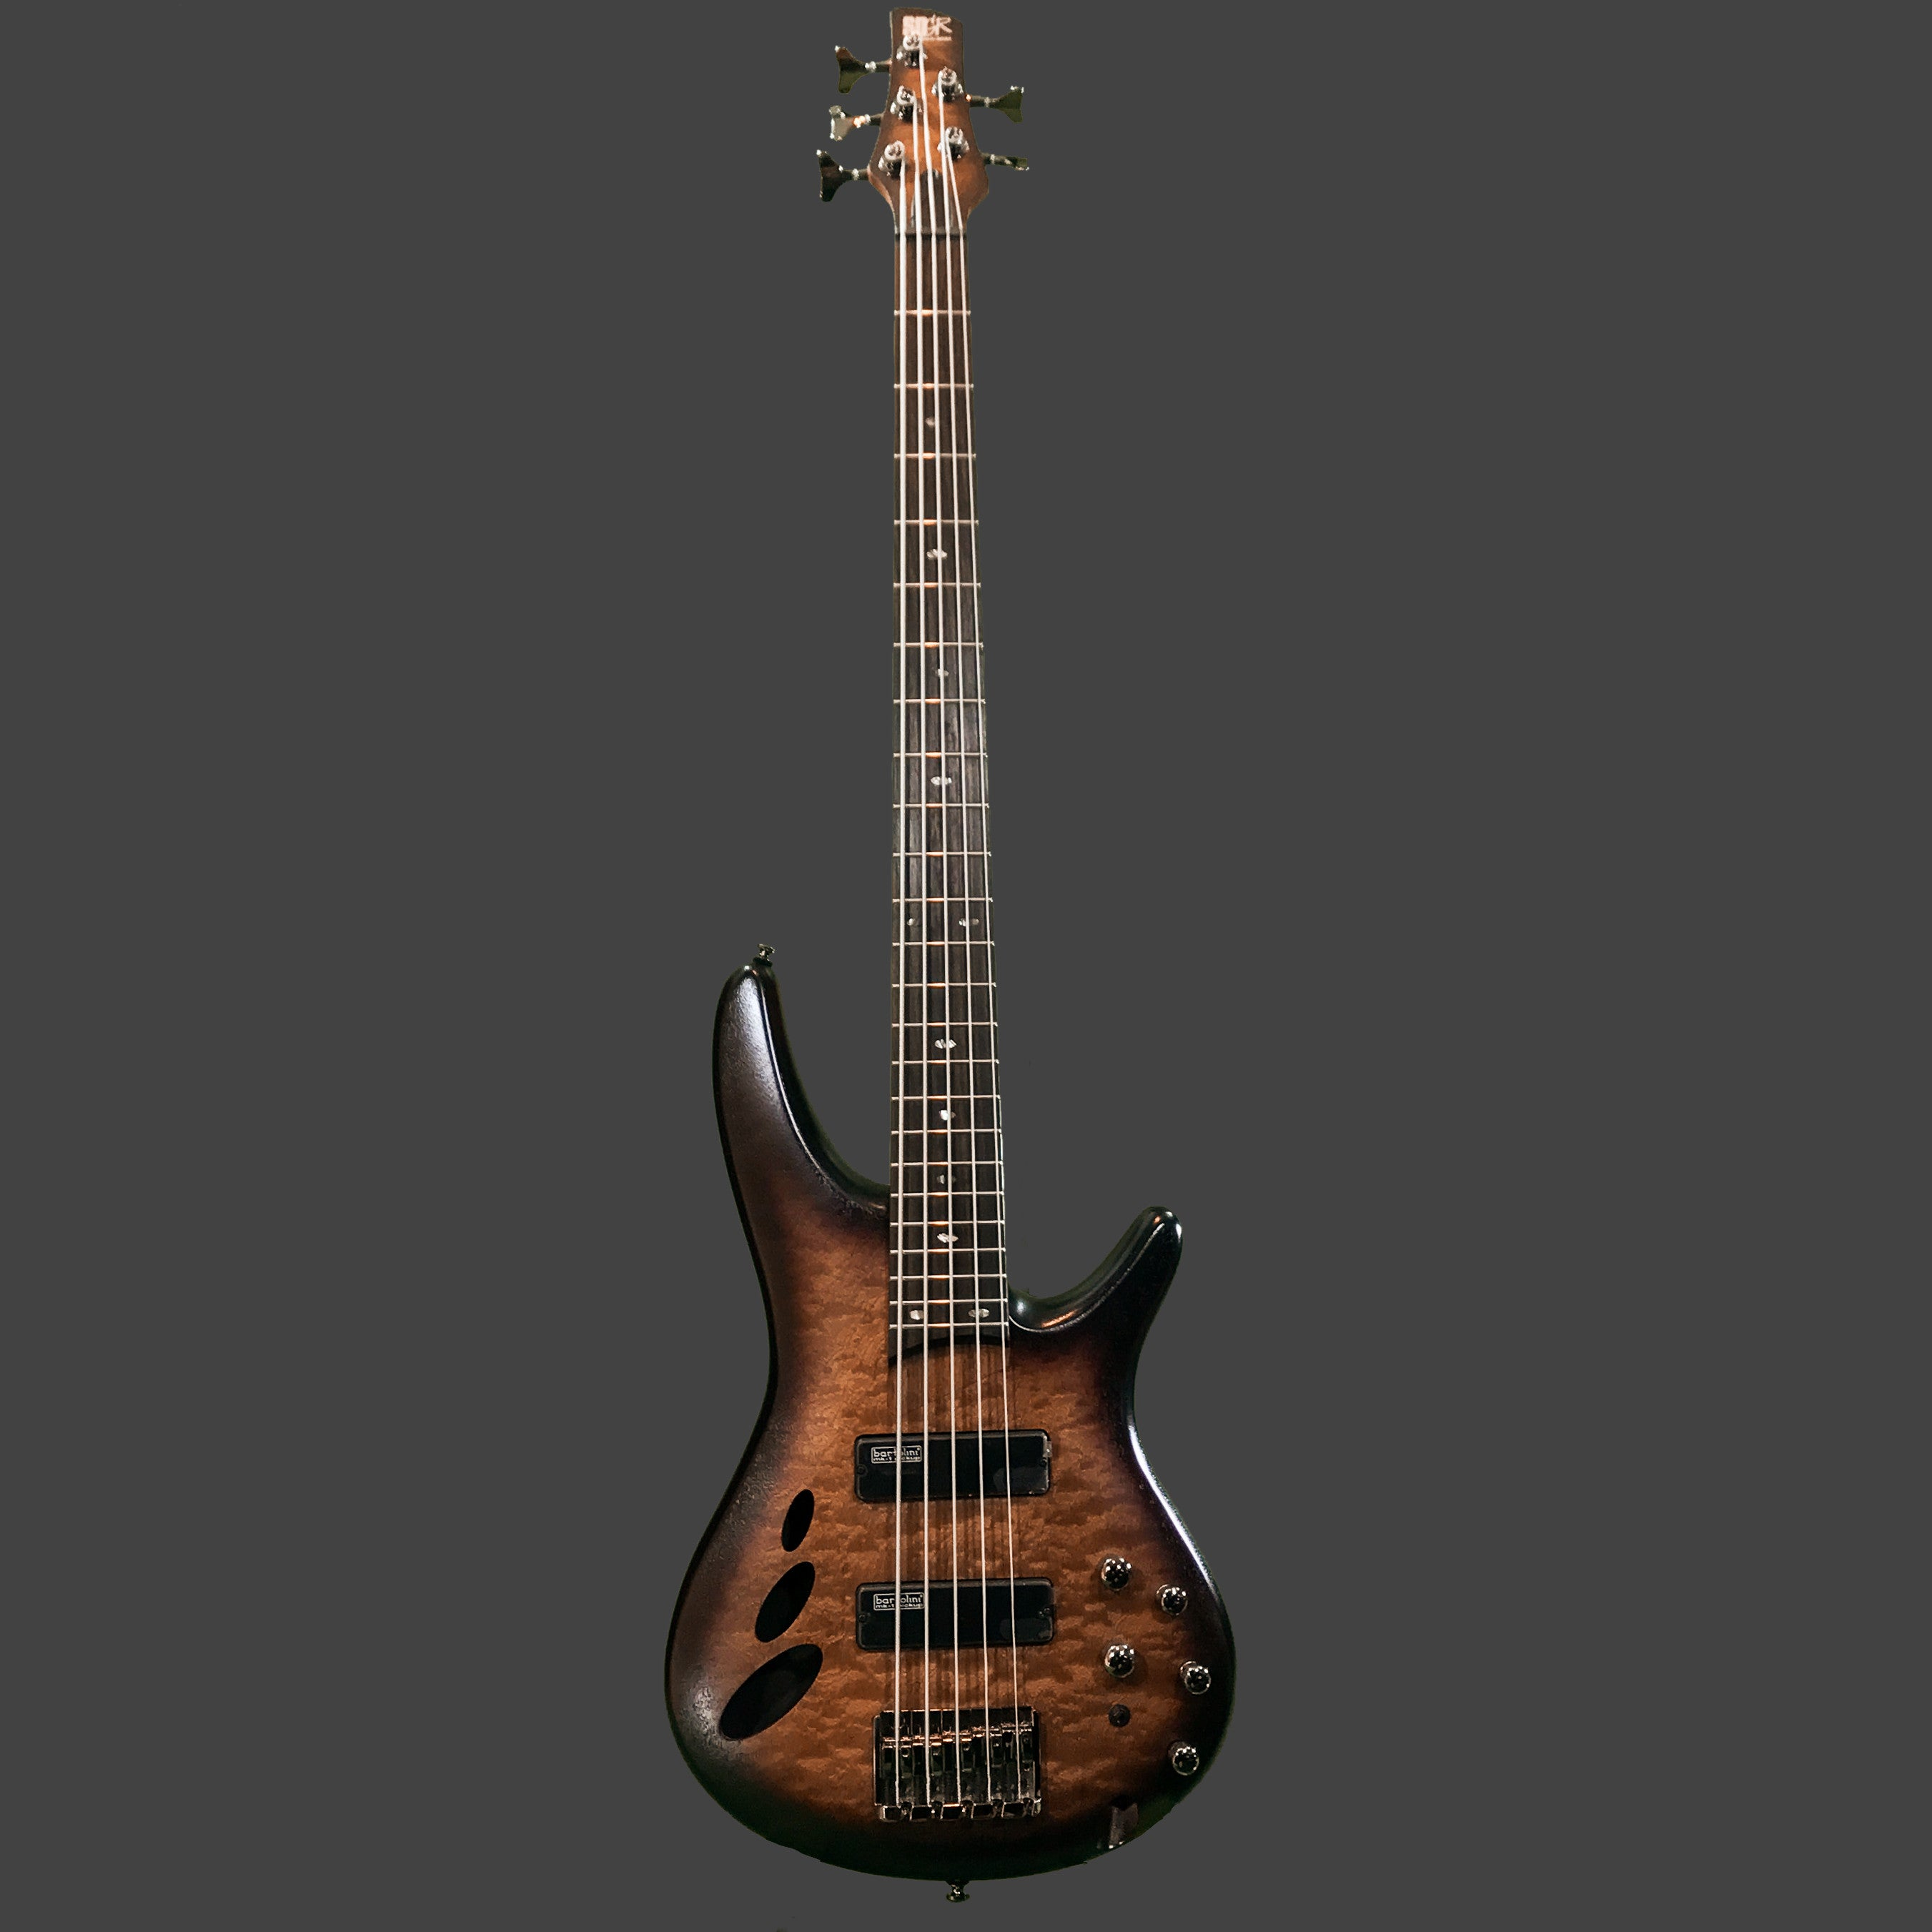 Ibanez SR30TH5 5-String Electric Bass Guitar - Huber Breese Music